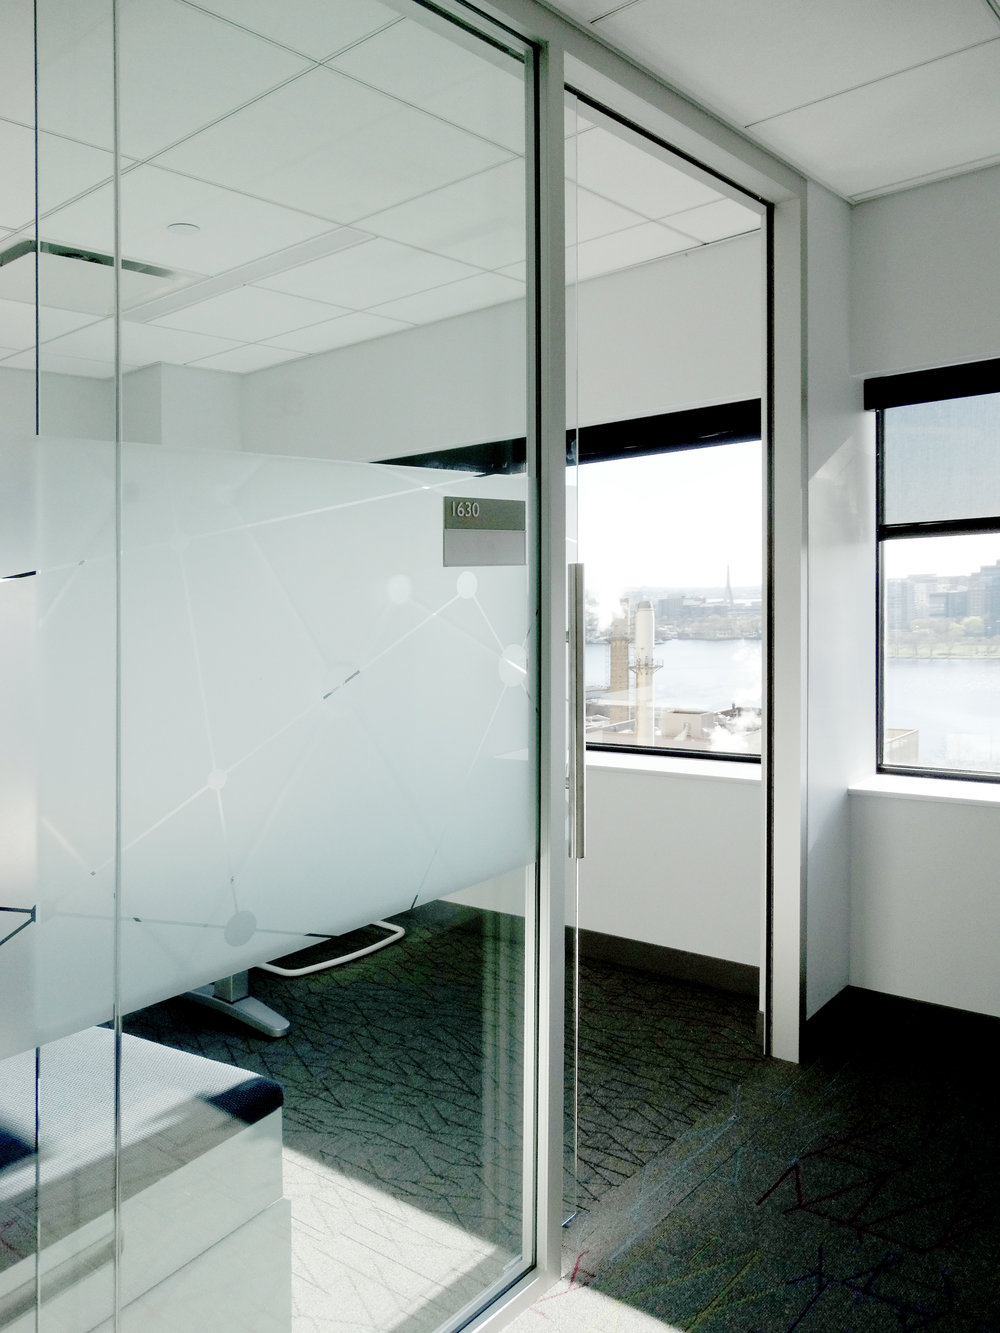 Litespace Demountable Aluminum Framed Wall Frameless Glass Sliding Door - Spaceworks AI.jpg